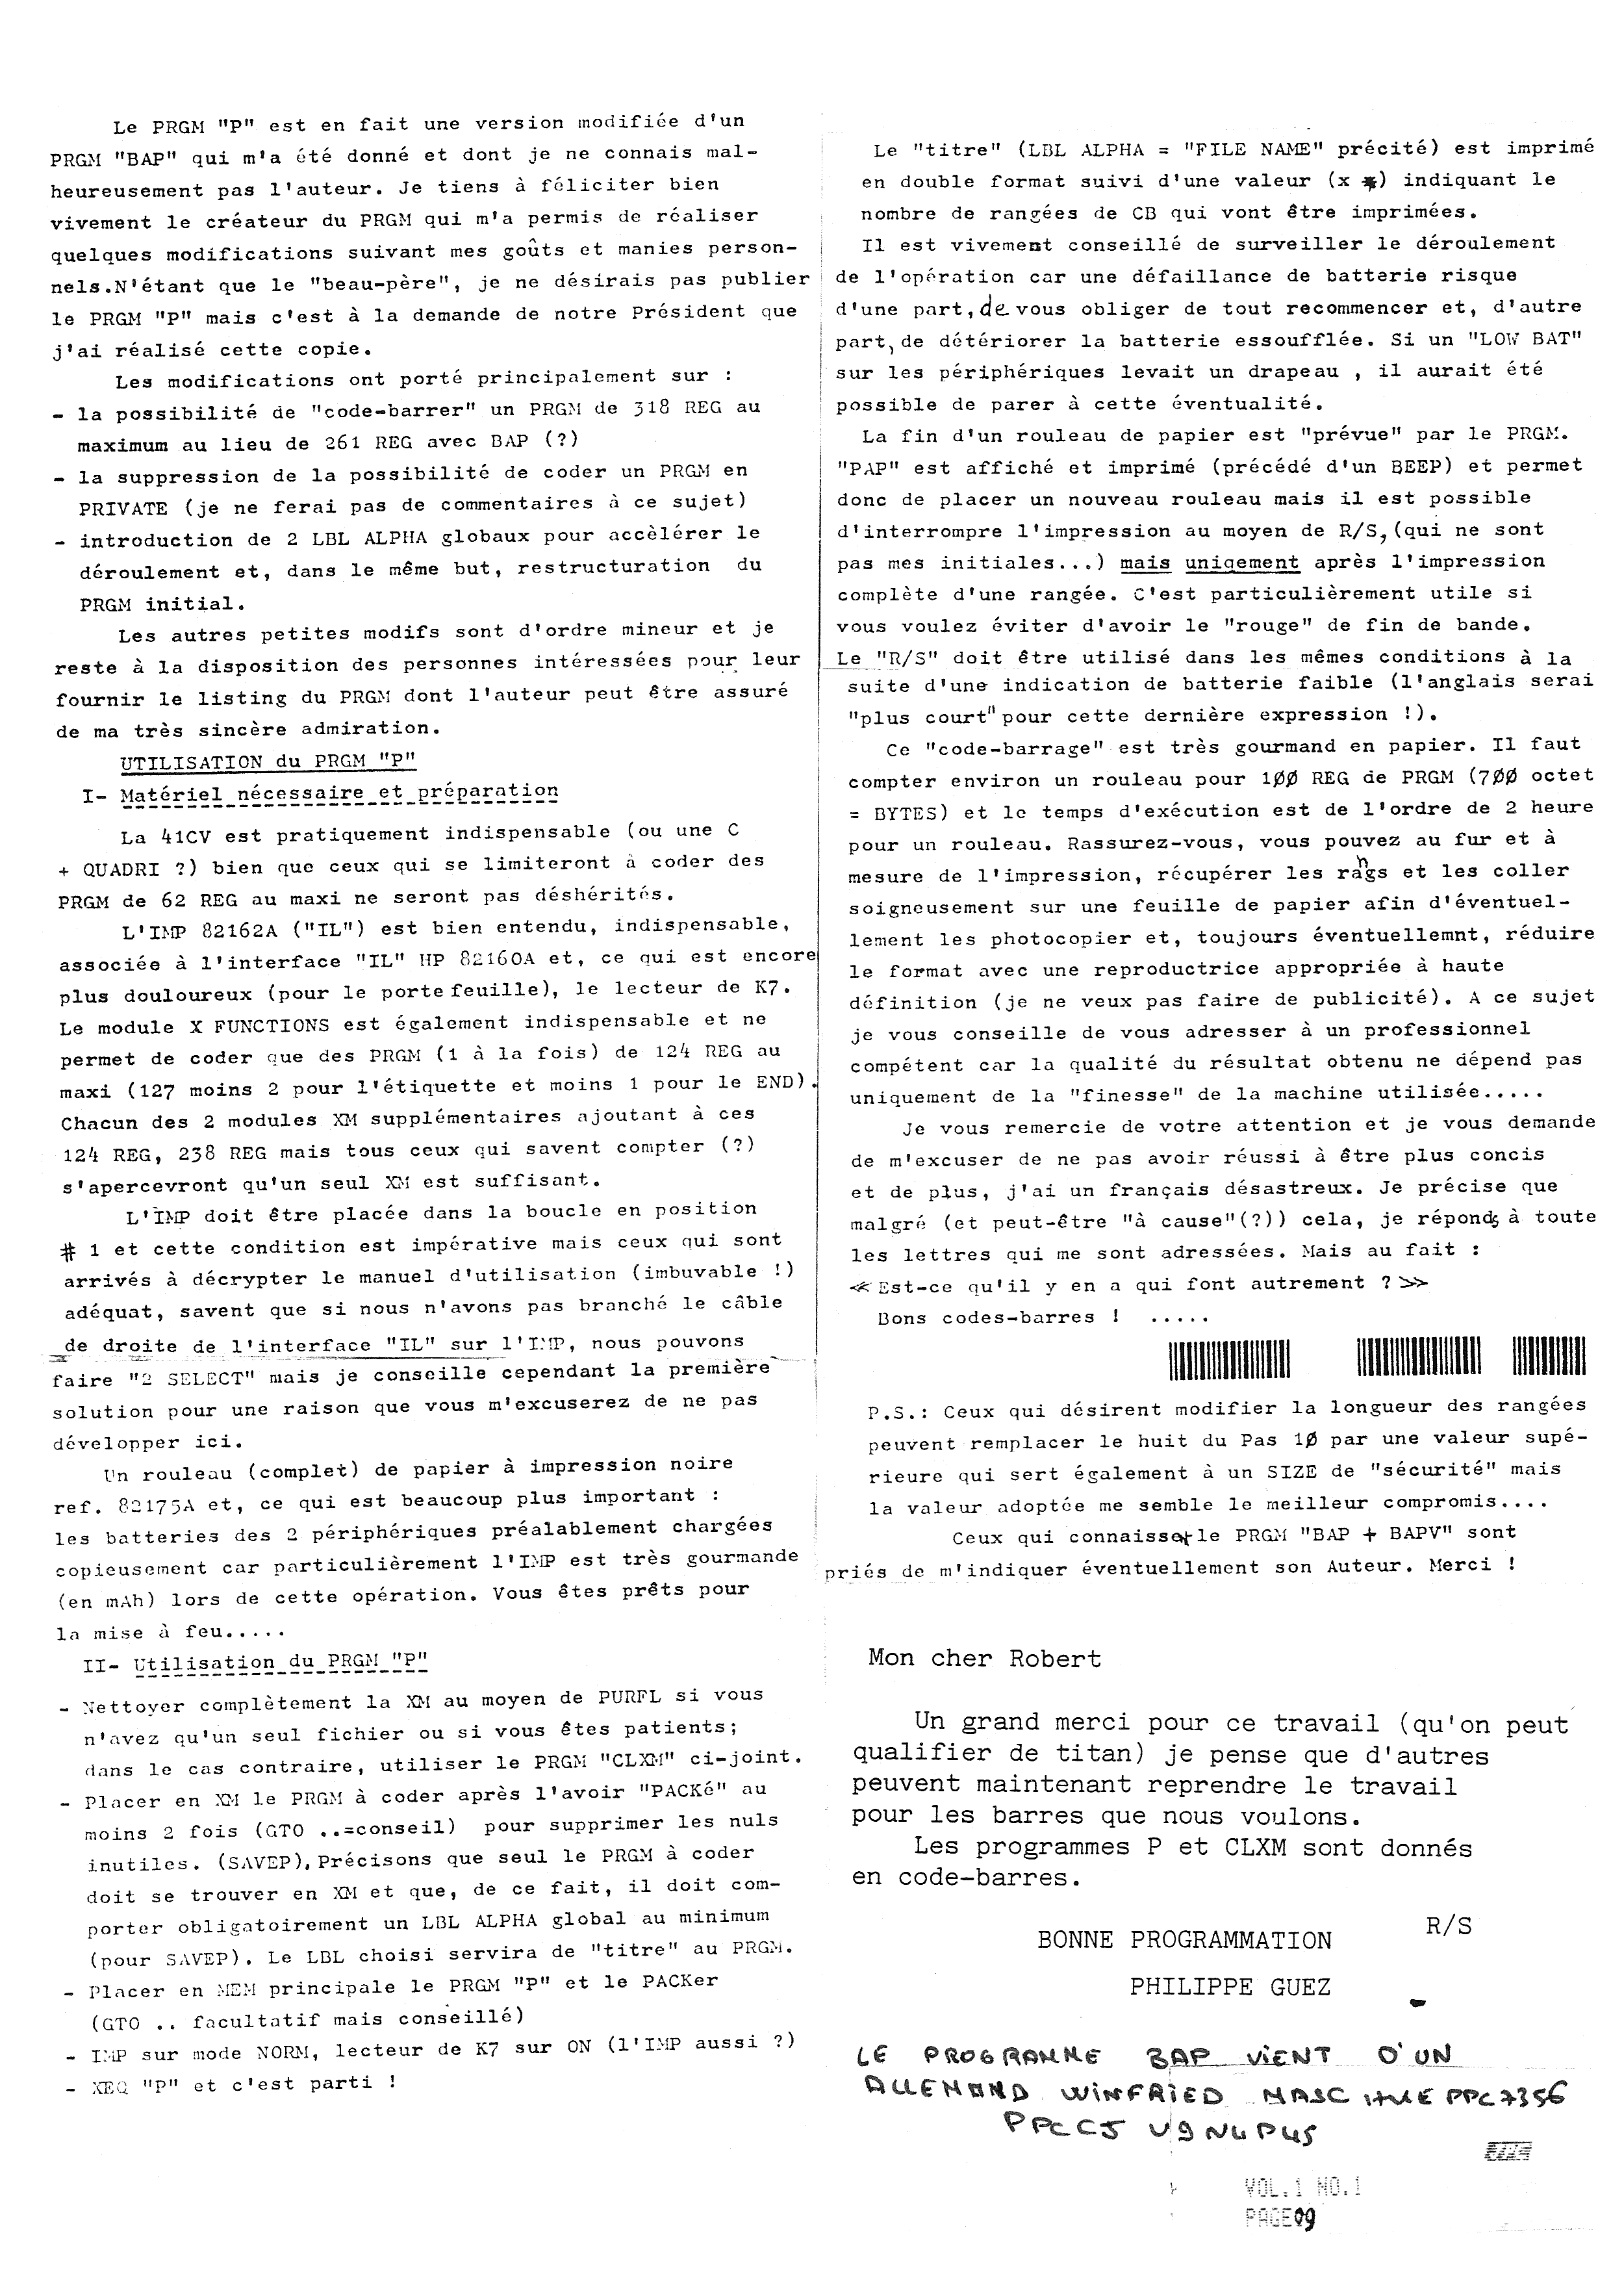 Jp-1-page-9-1000